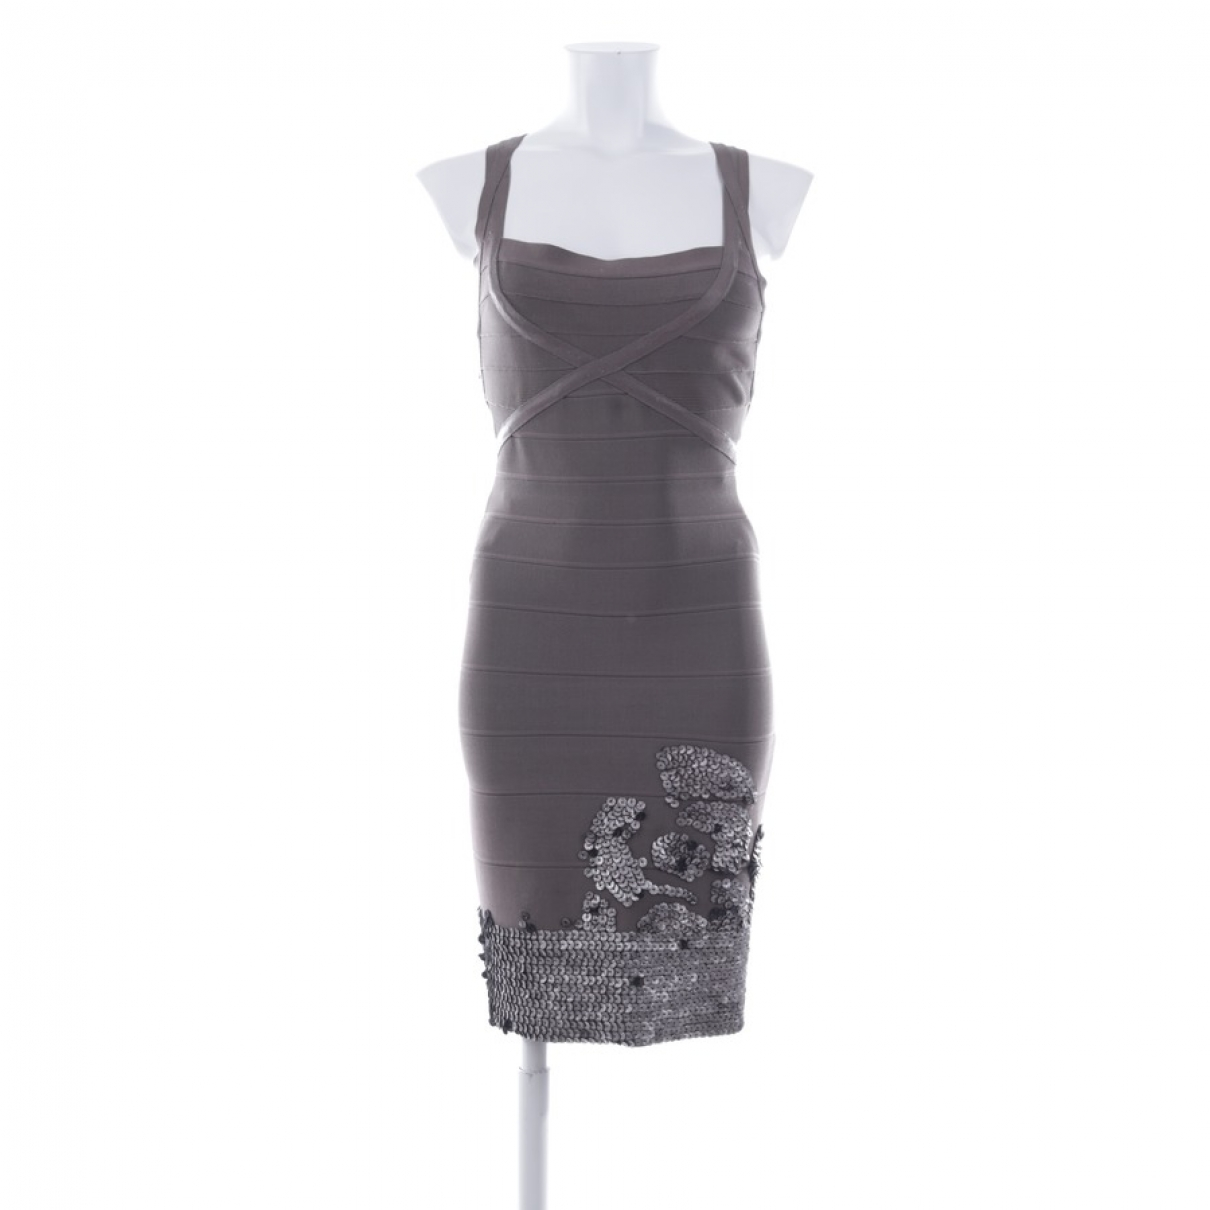 Herve Leger \N Kleid in  Braun Synthetik